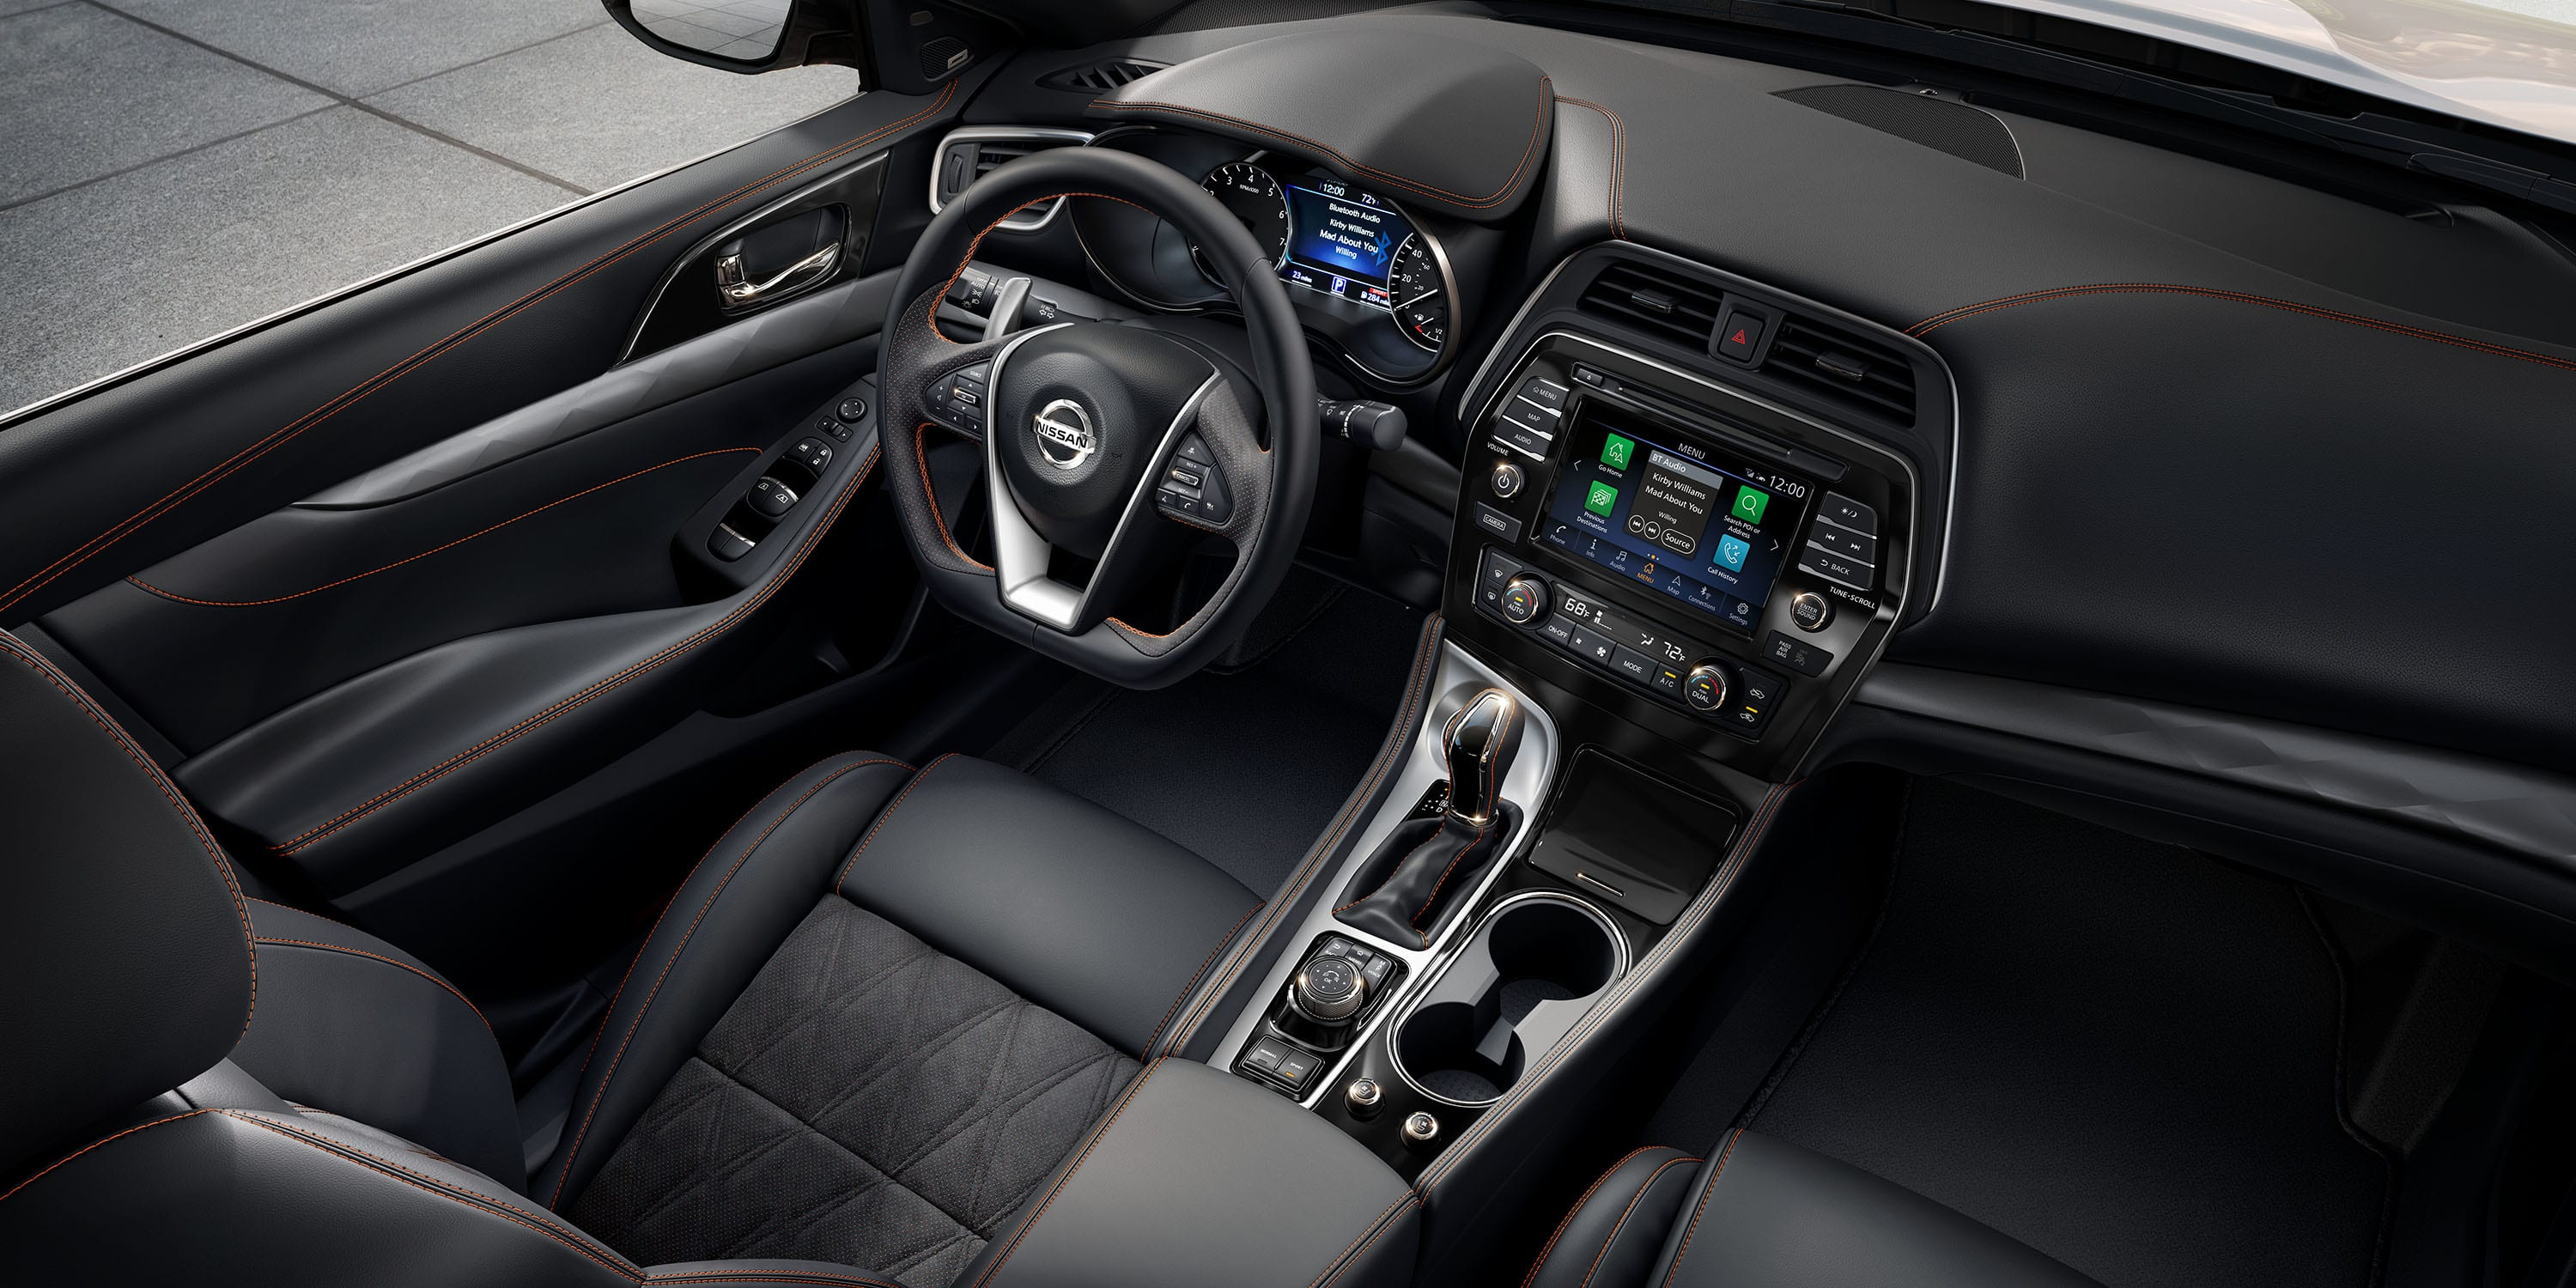 Interior of the 2019 Nissan Maxima